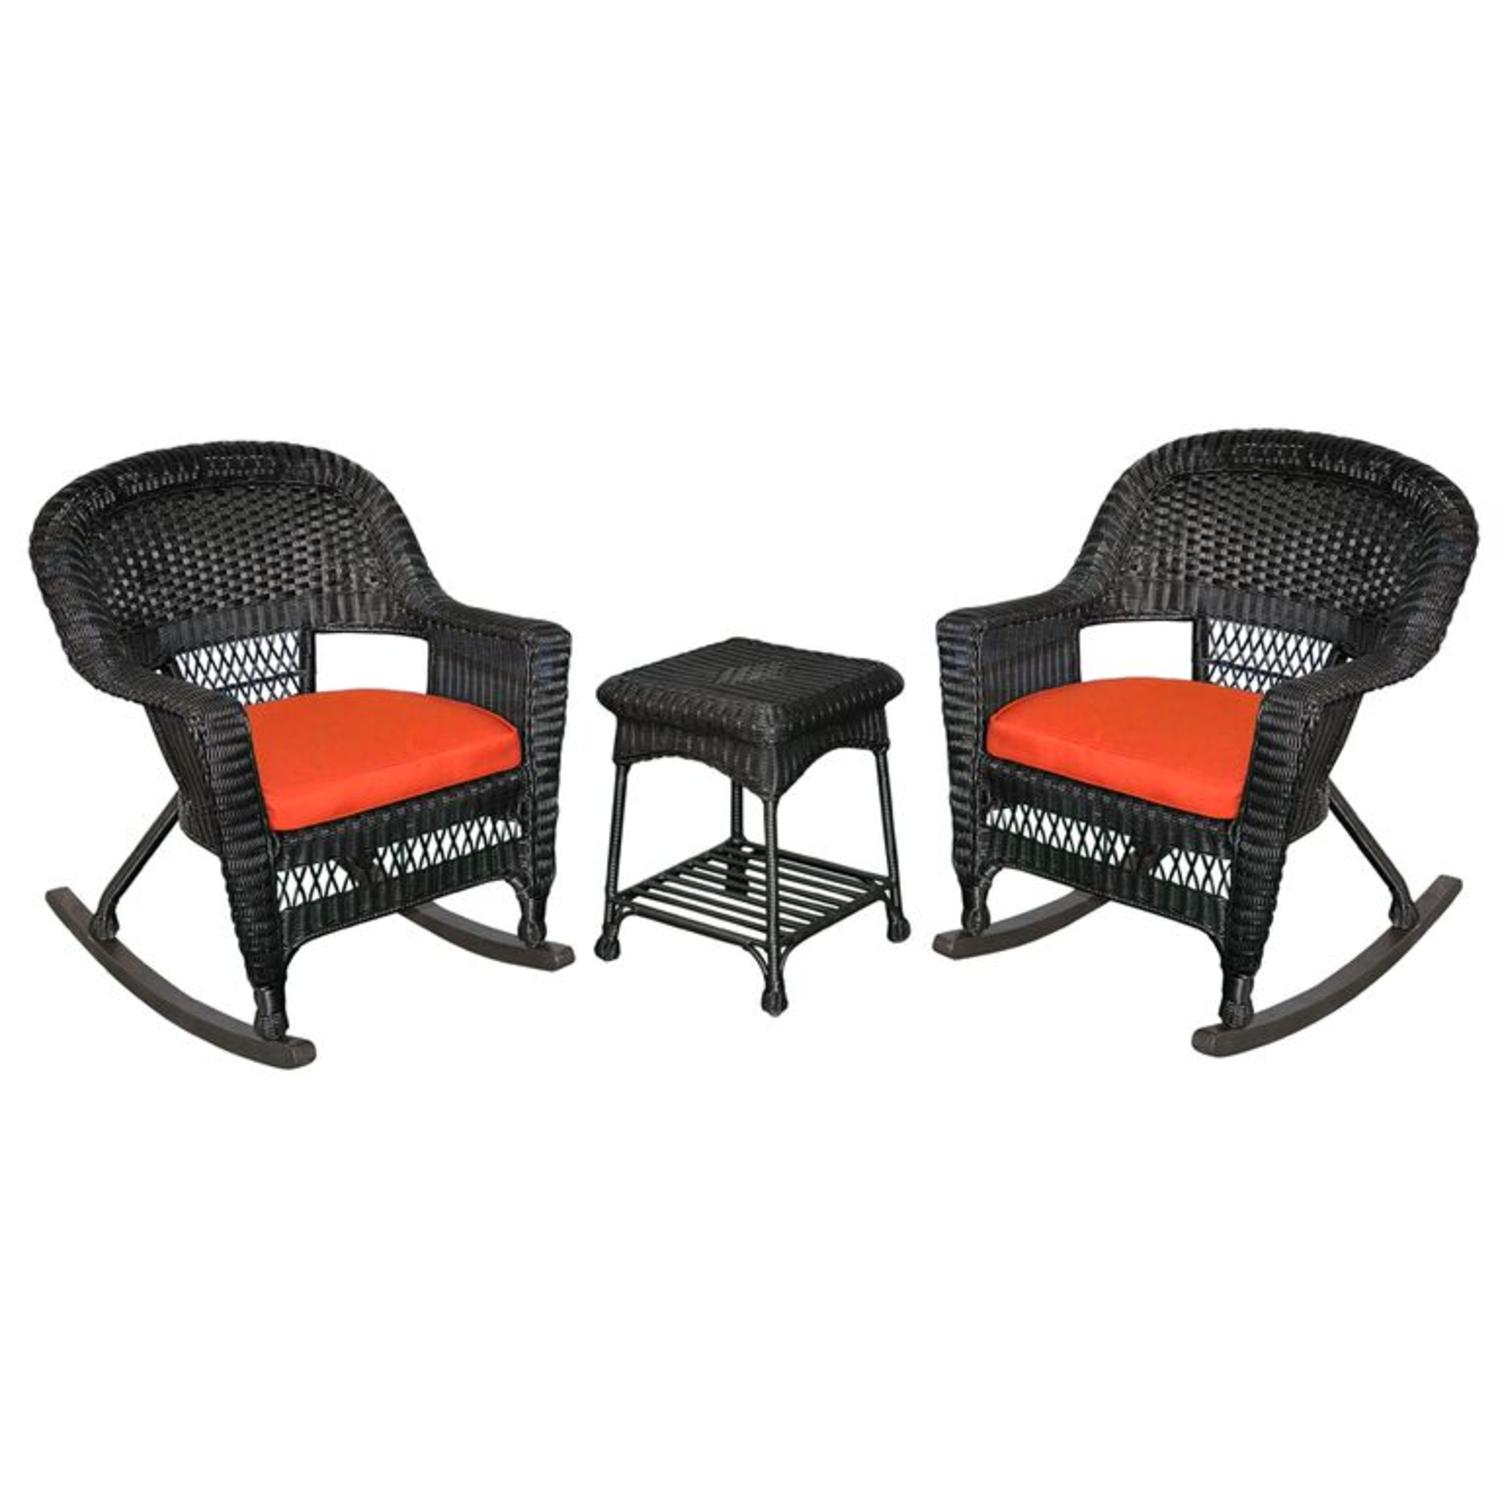 3-Piece Tiana Black Resin Wicker Patio Rocker Chair & Table Furniture Set - Red Cushions